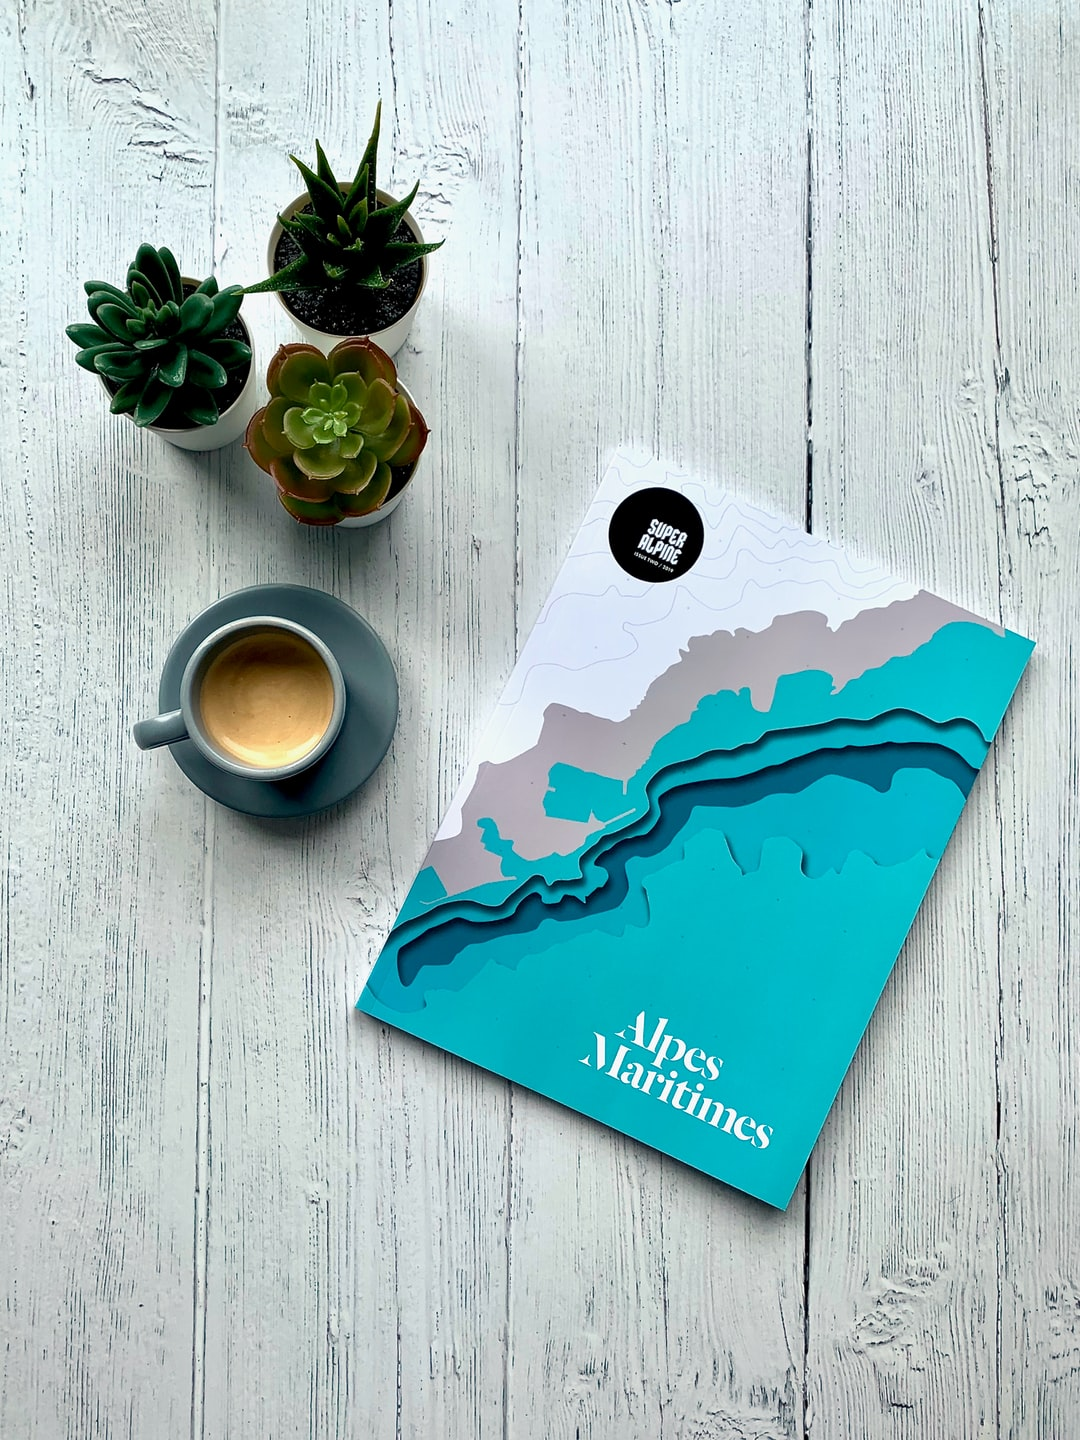 Alpes-Maritimes magazine with an espresso and plants on a wood background